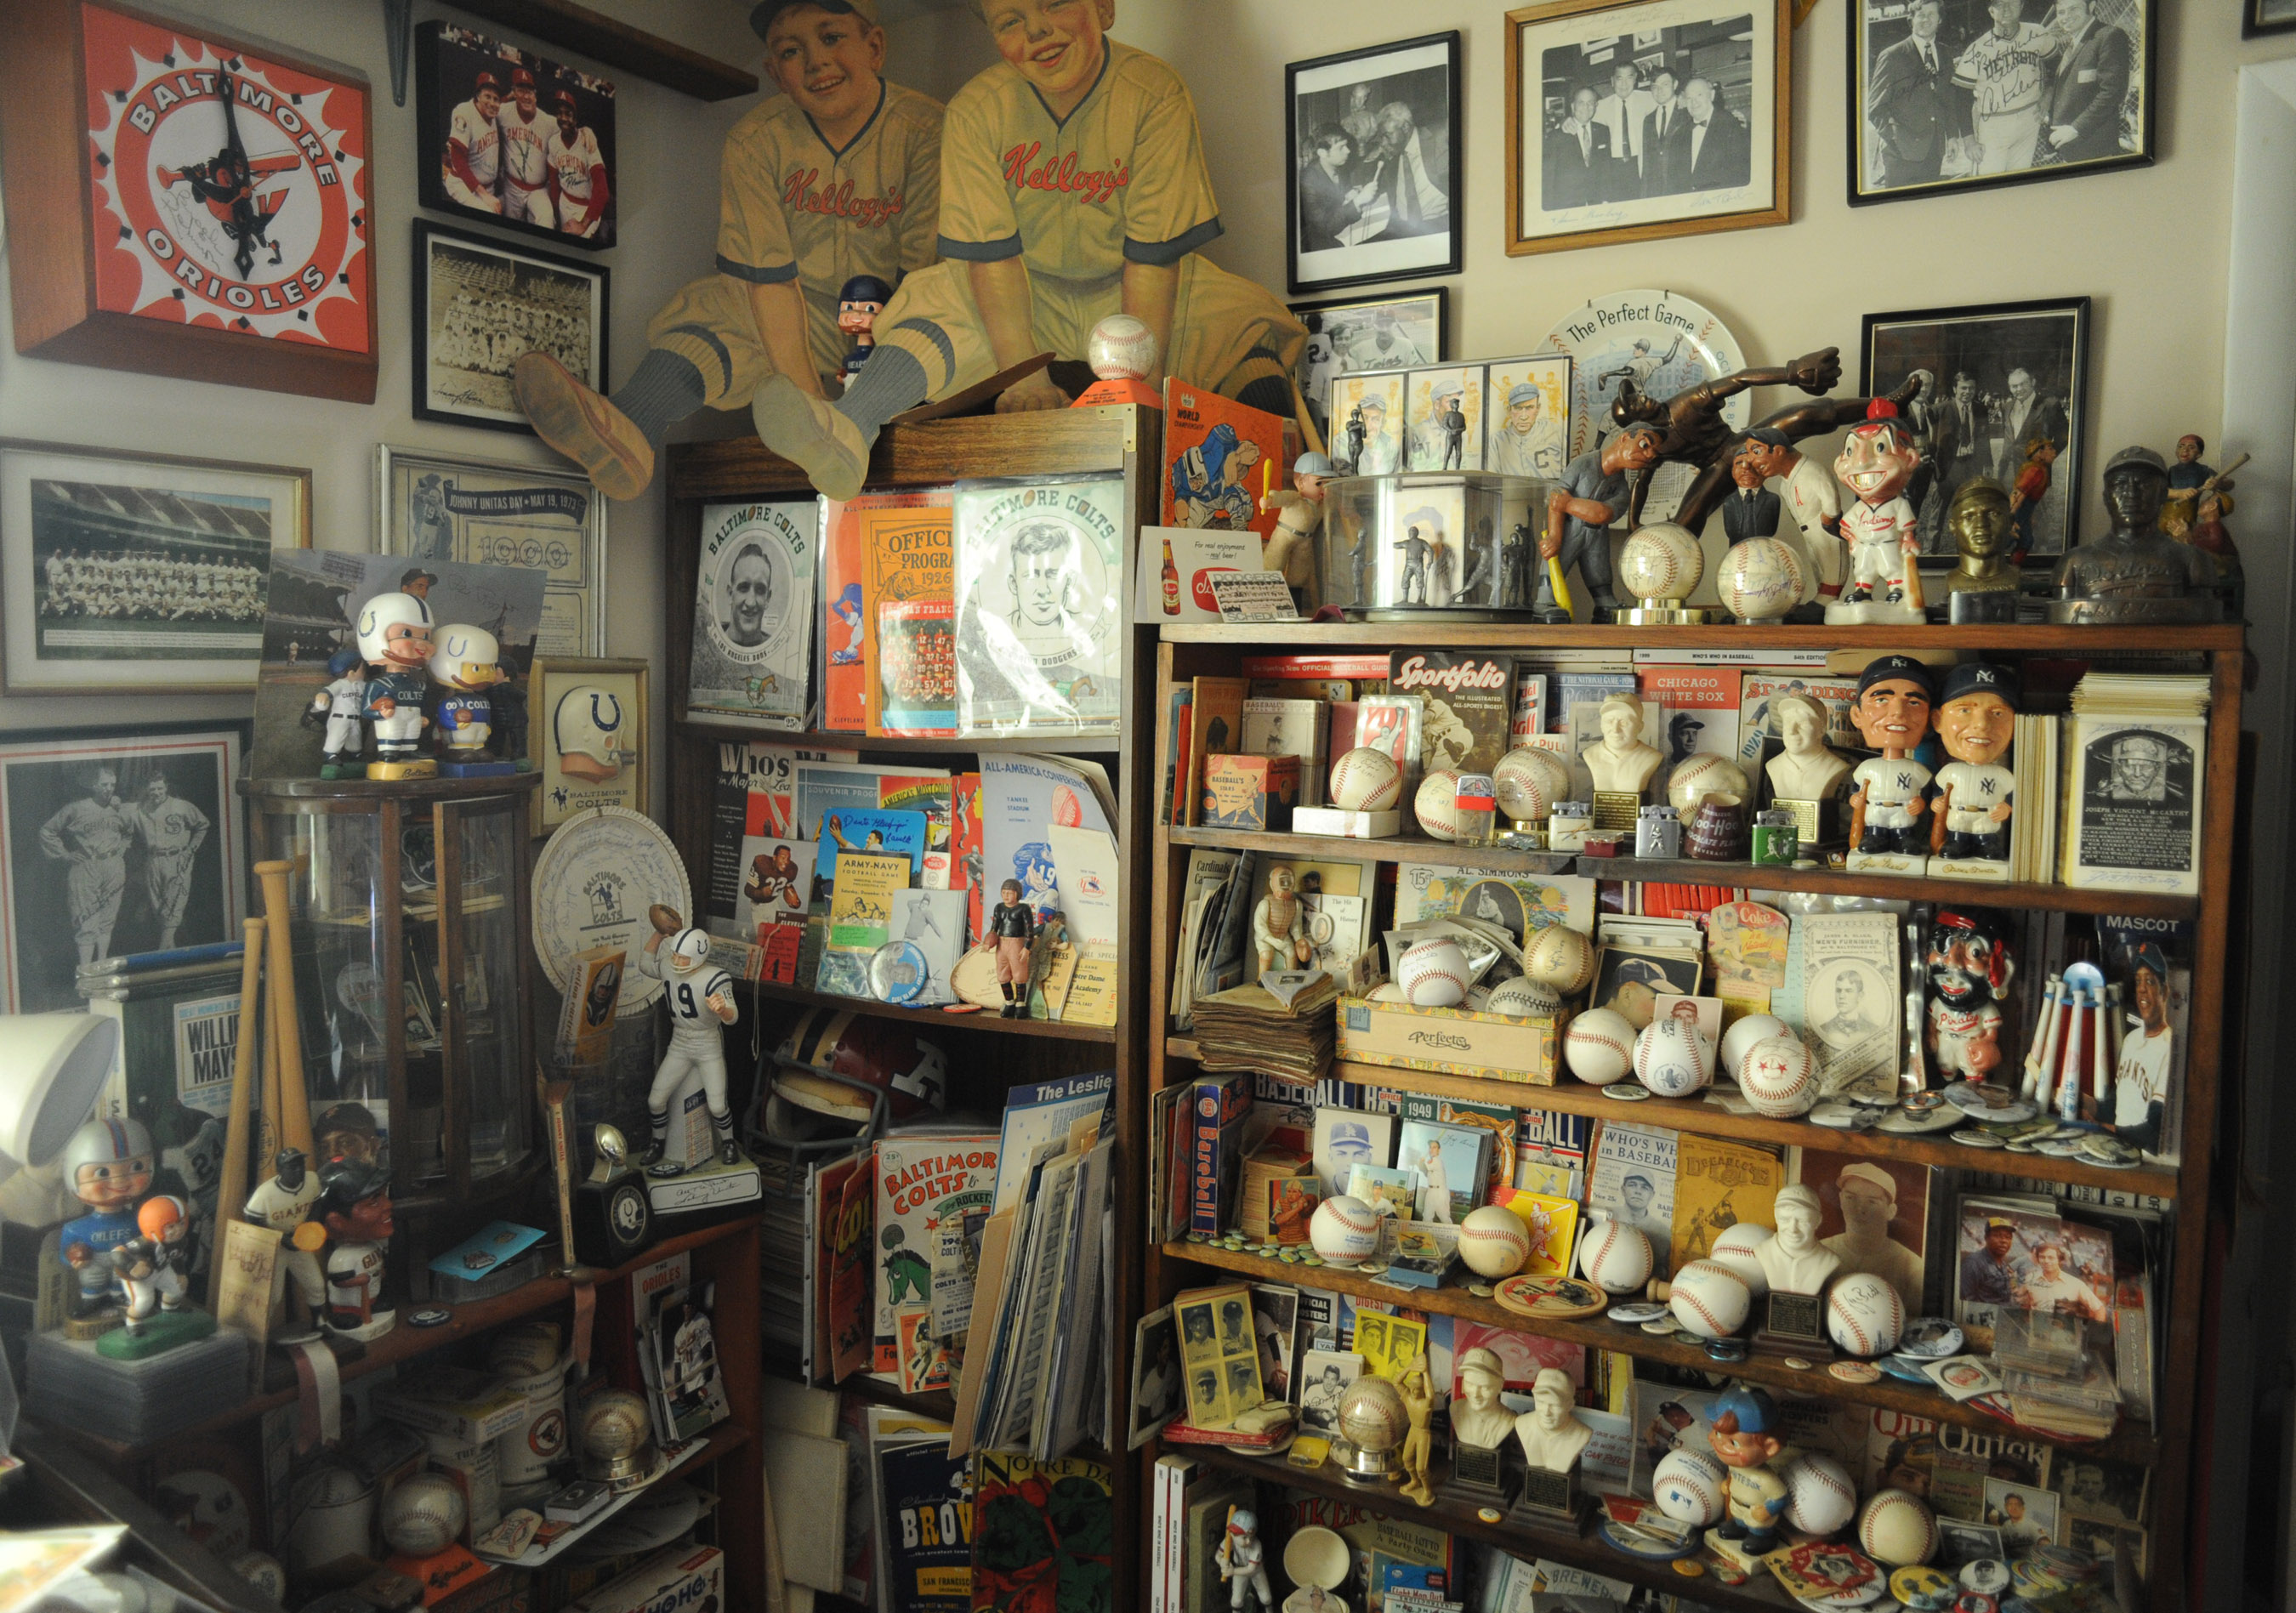 What Are Some Tips For Displaying Sports Memorabilia? When you have a collection of sports memorabilia that you want to show off, pick through the items and select collectibles that tell .